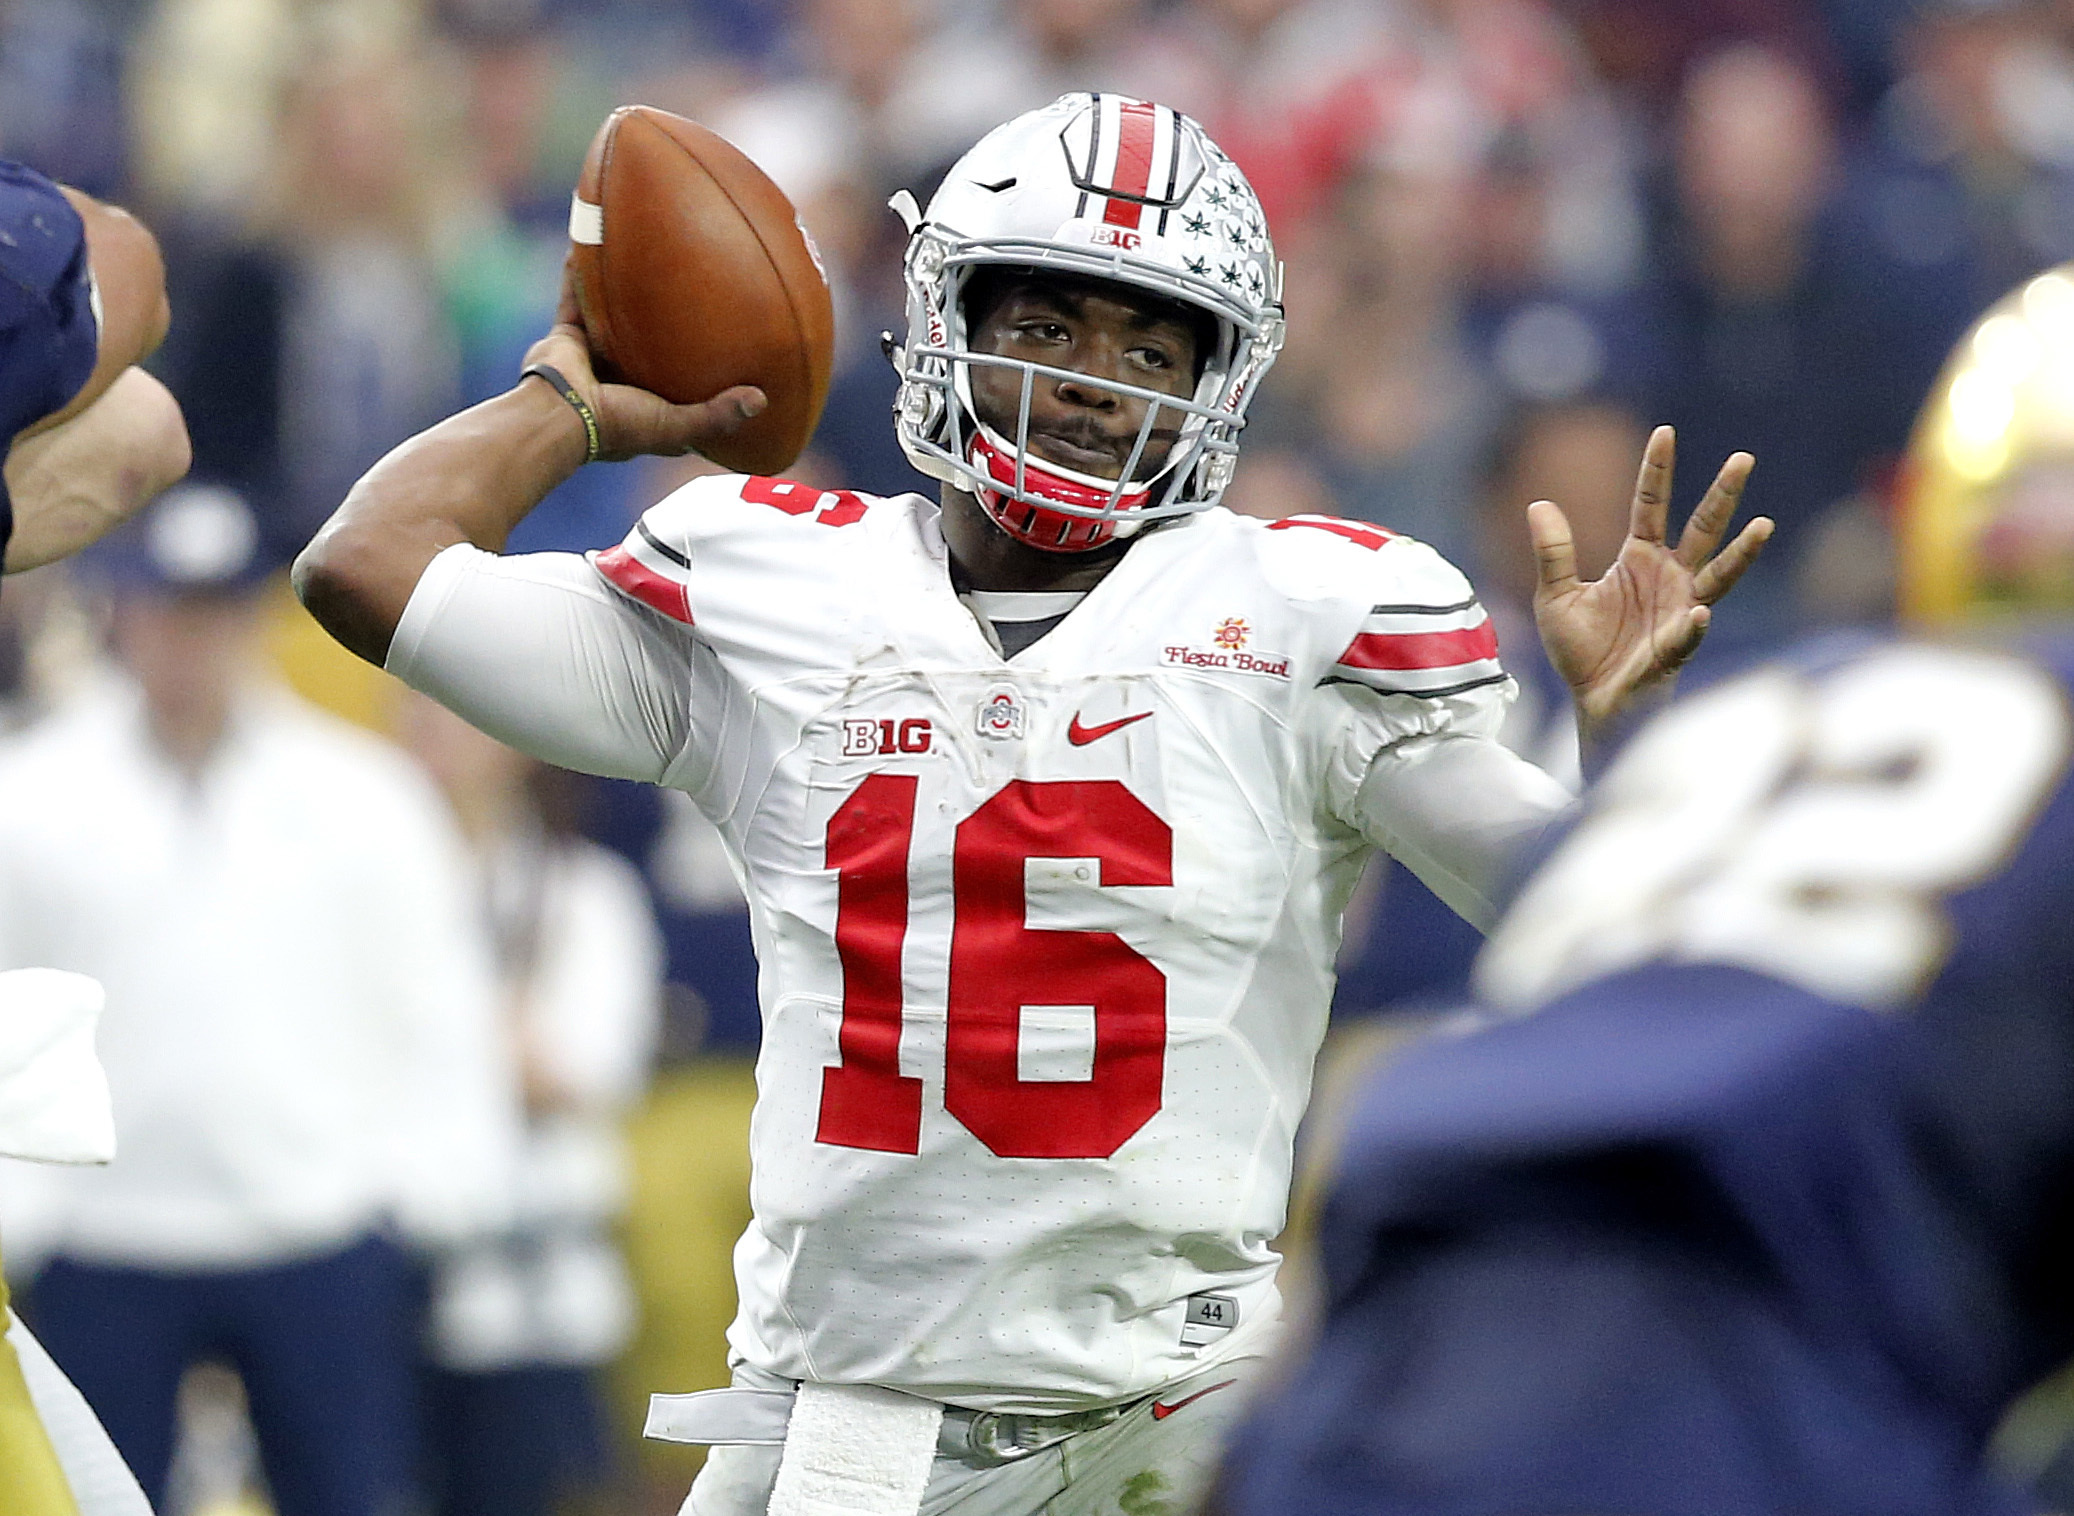 FILE - In this Jan. 1, 2016, file photo, Ohio State quarterback J.T. Barrett (16) throws a pass against Notre Dame during the second half of the Fiesta Bowl NCAA College football game in Glendale, Ariz. Last year Ohio States offensive engine was powered m